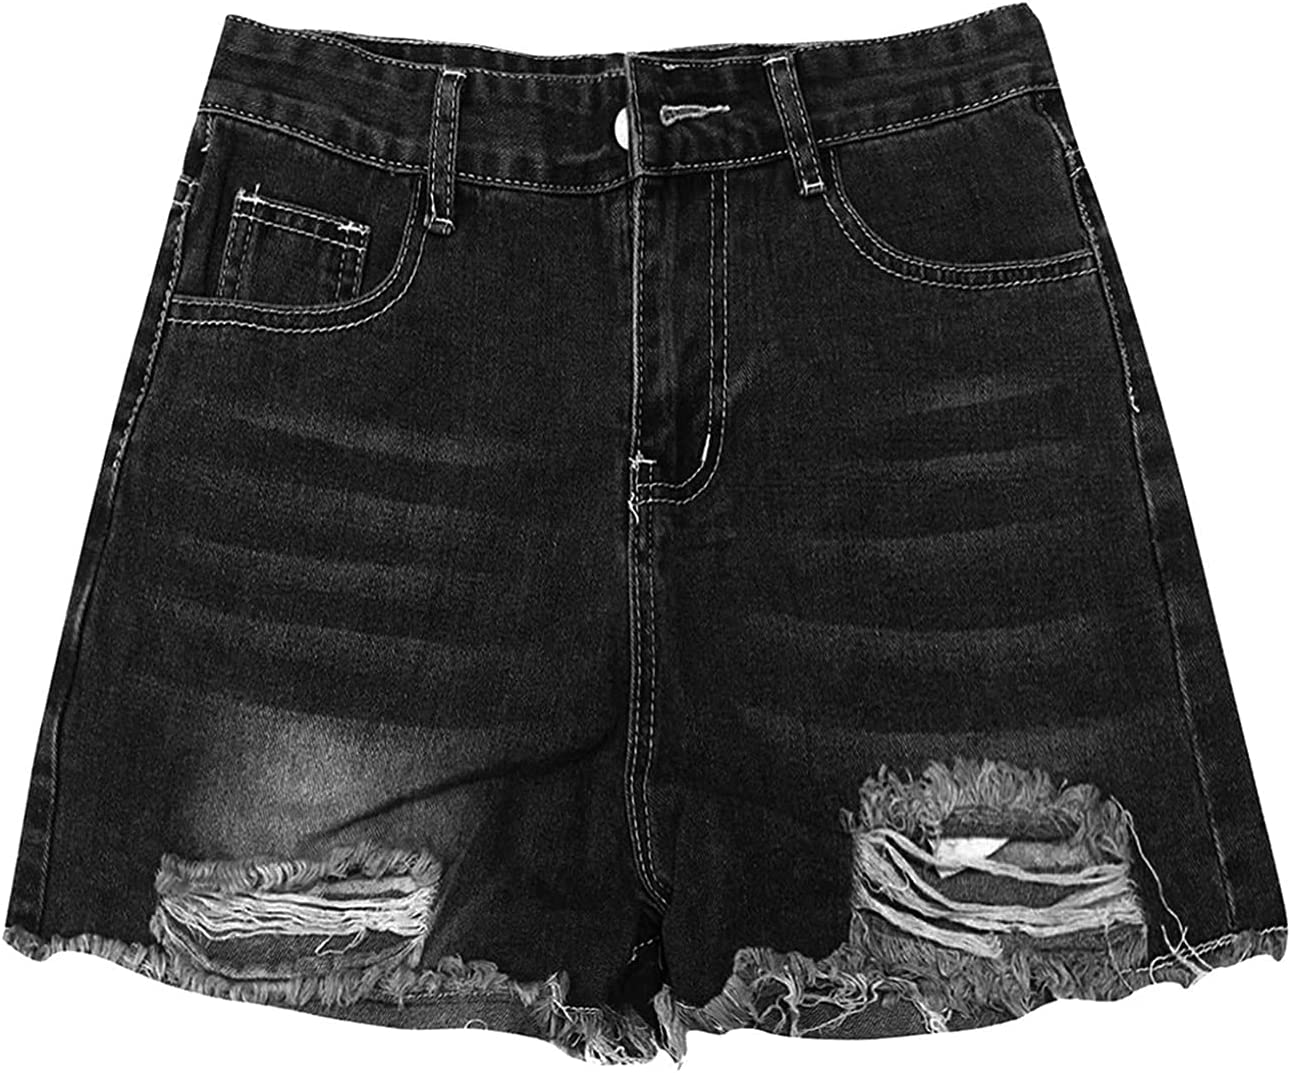 Casual Frayed Jean Shorts for Women Summer Destroyed Hole Denim Hot Short Pants Stretch Ripped Short Jeans With Pockets (Black,Medium)